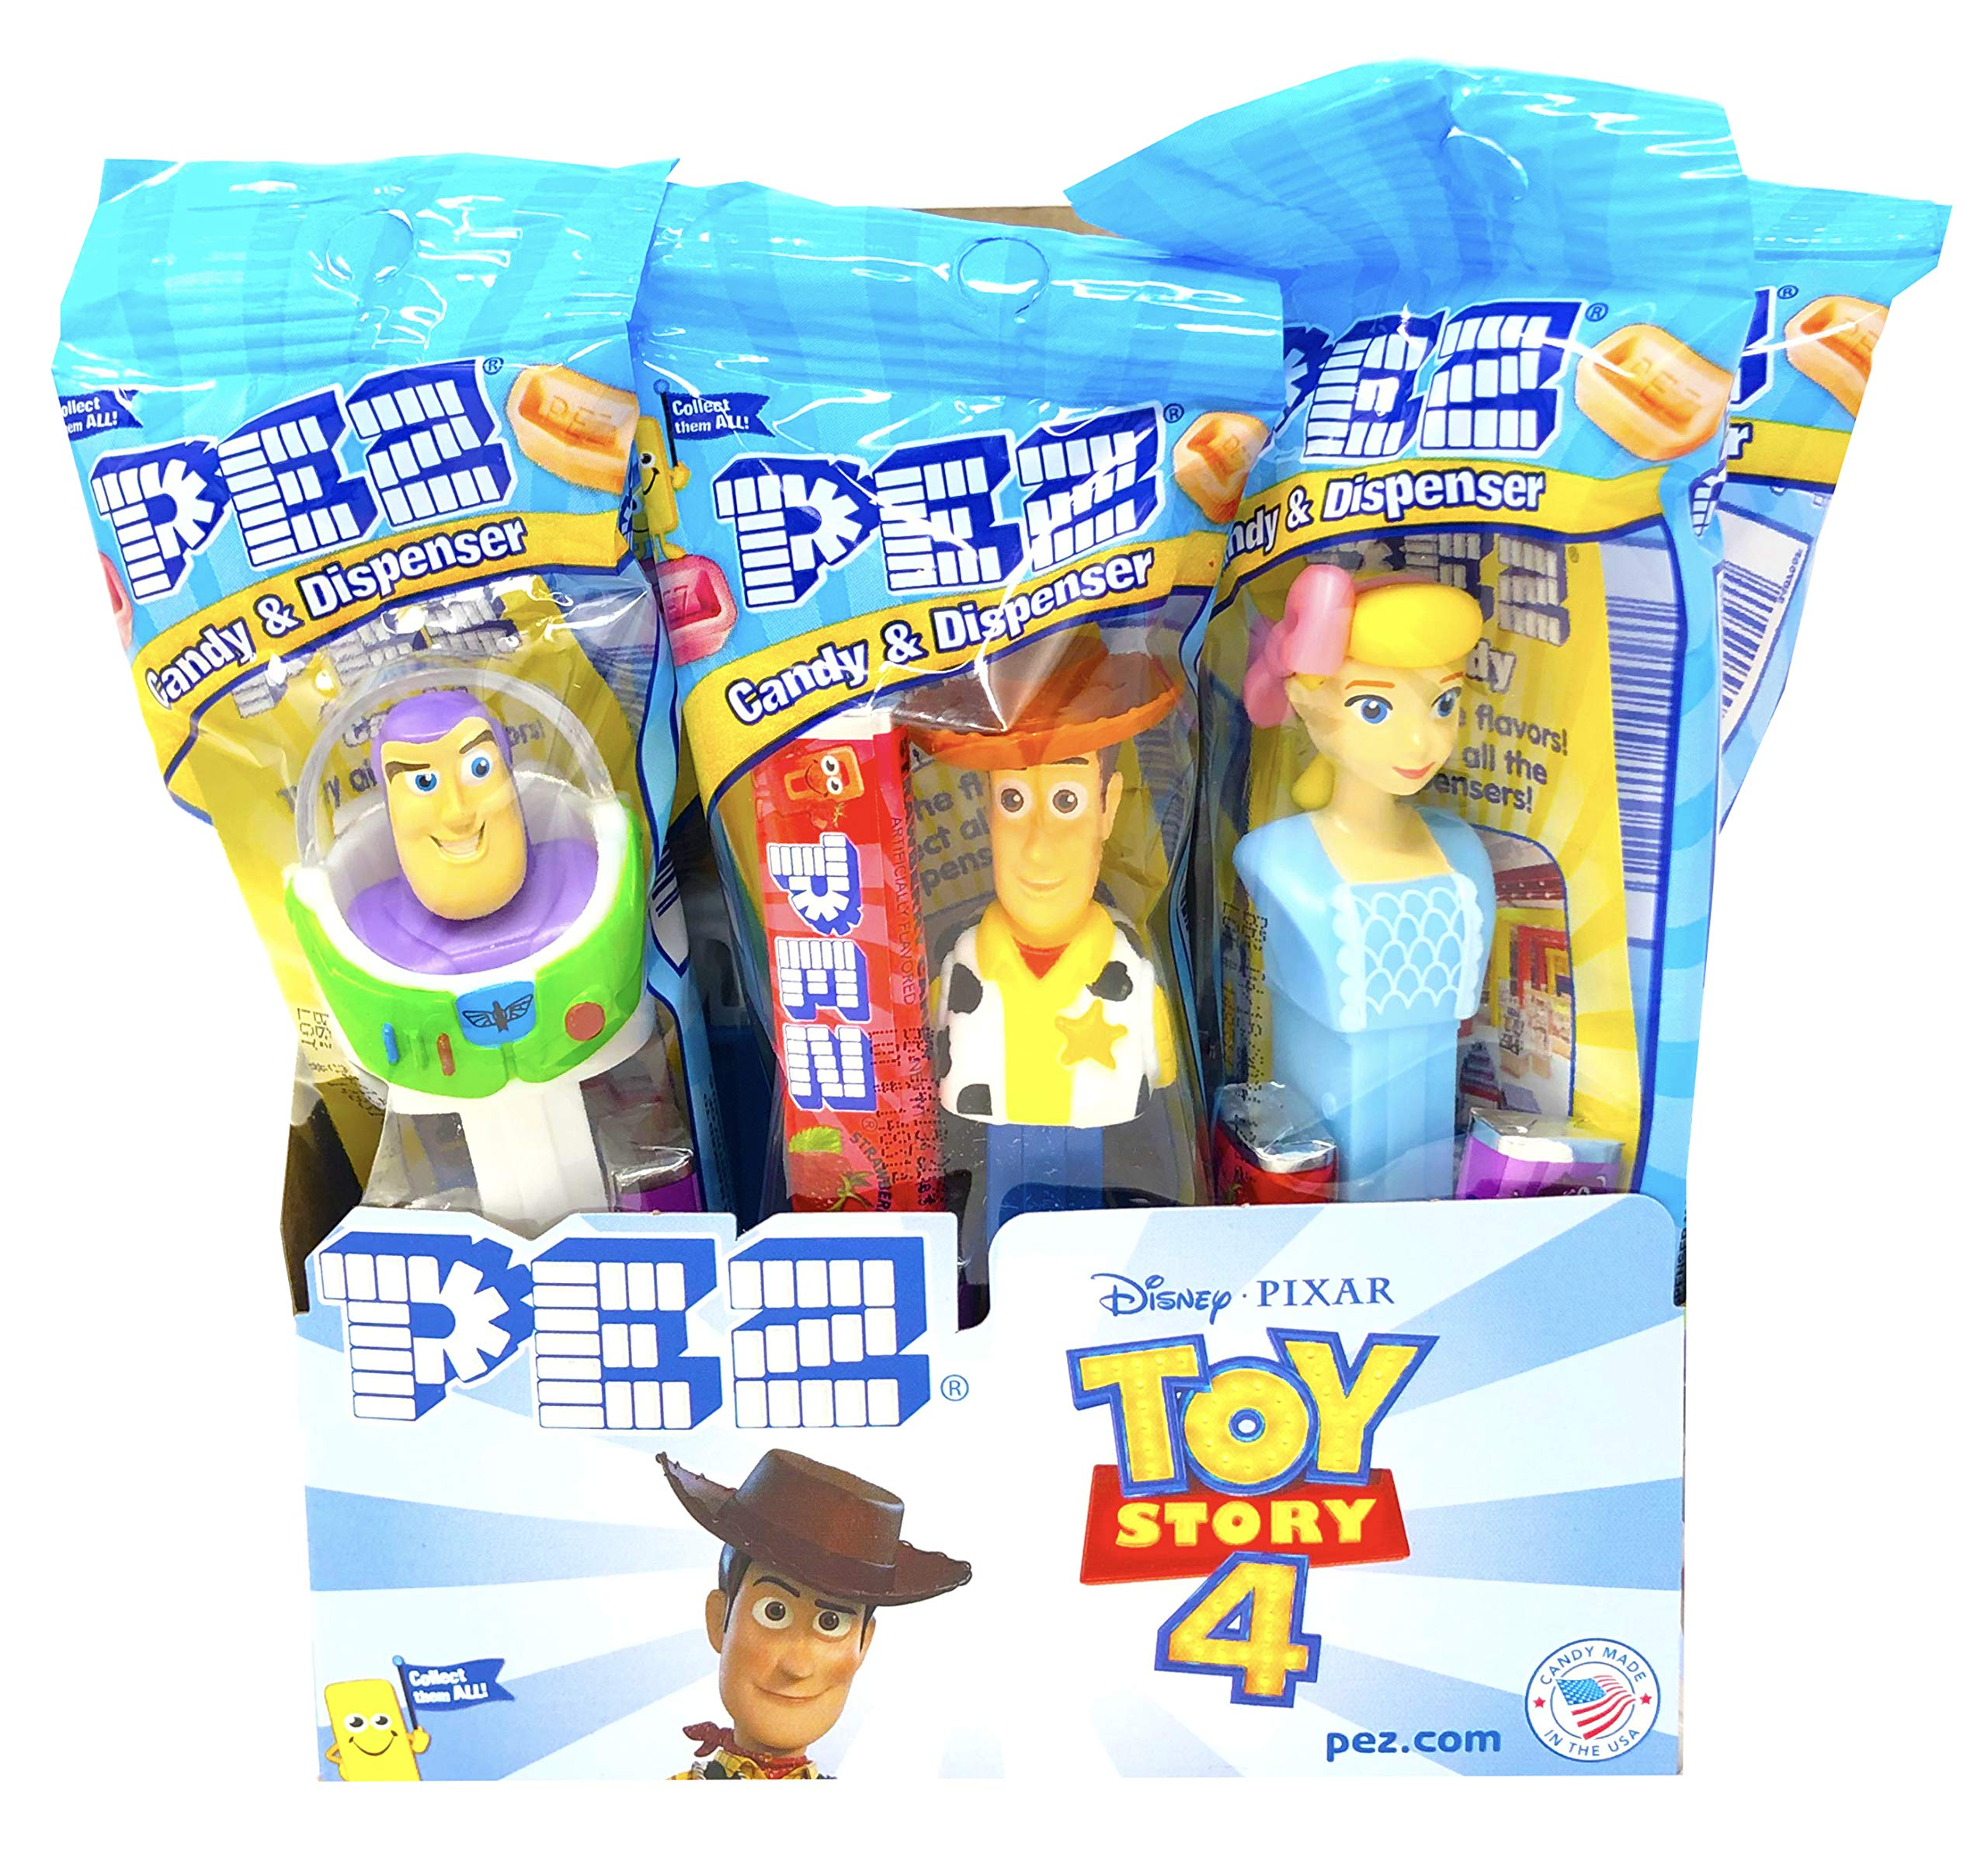 PEZ Toy Story 4 Candy Dispensers Individually Wrapped PEZ Candy and Dispensers with Tru Inertia Kazoo 12 Pack by Tru Inertia